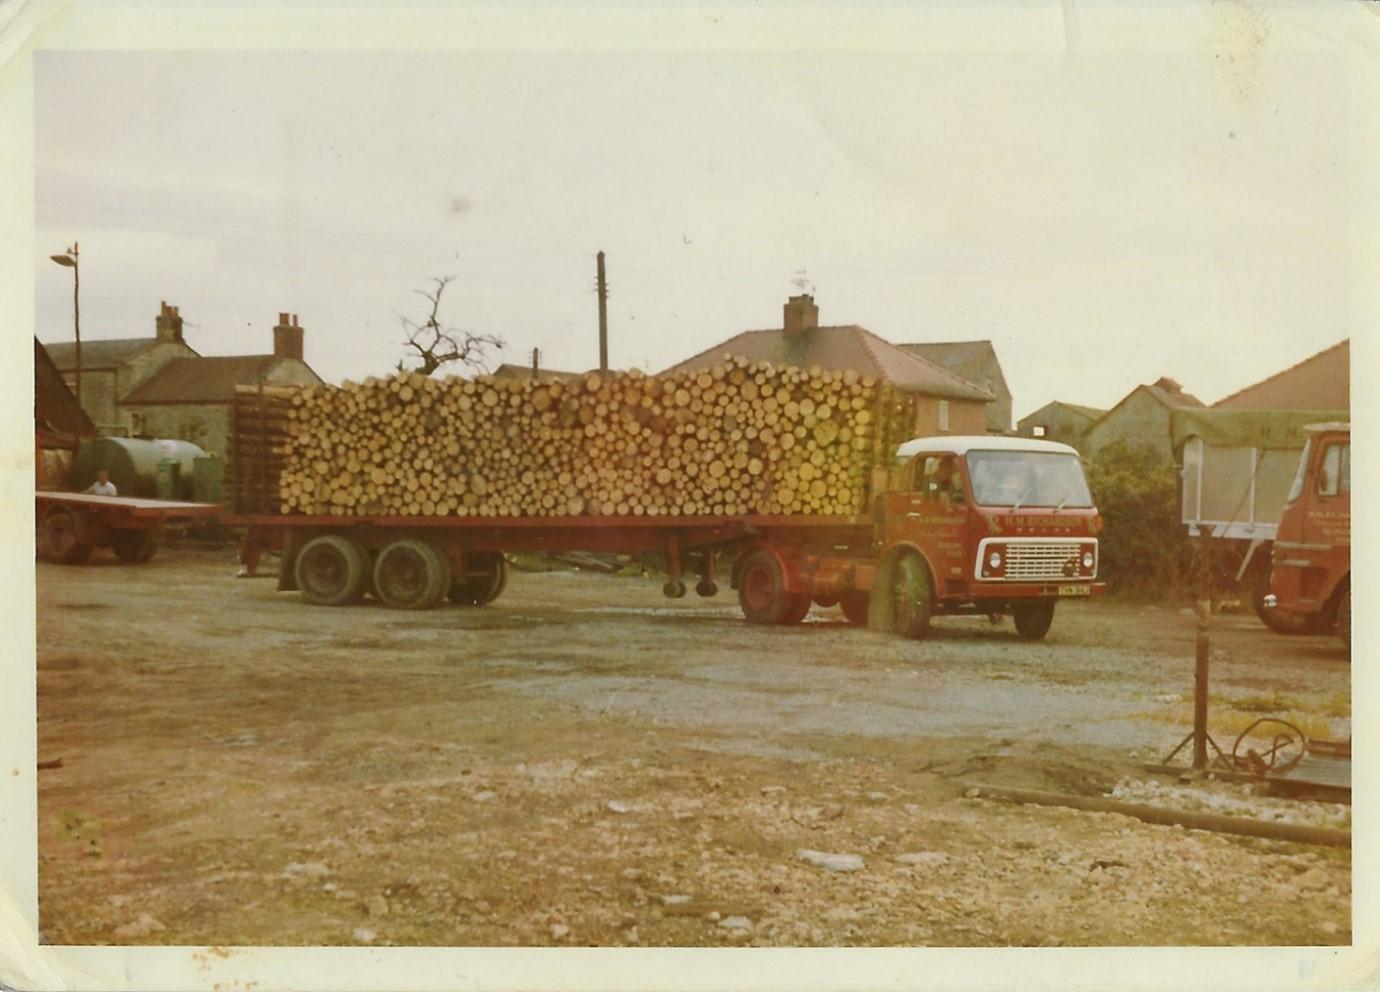 An early Volvo F86 and possibly an 8 Wheeler just visible at the right